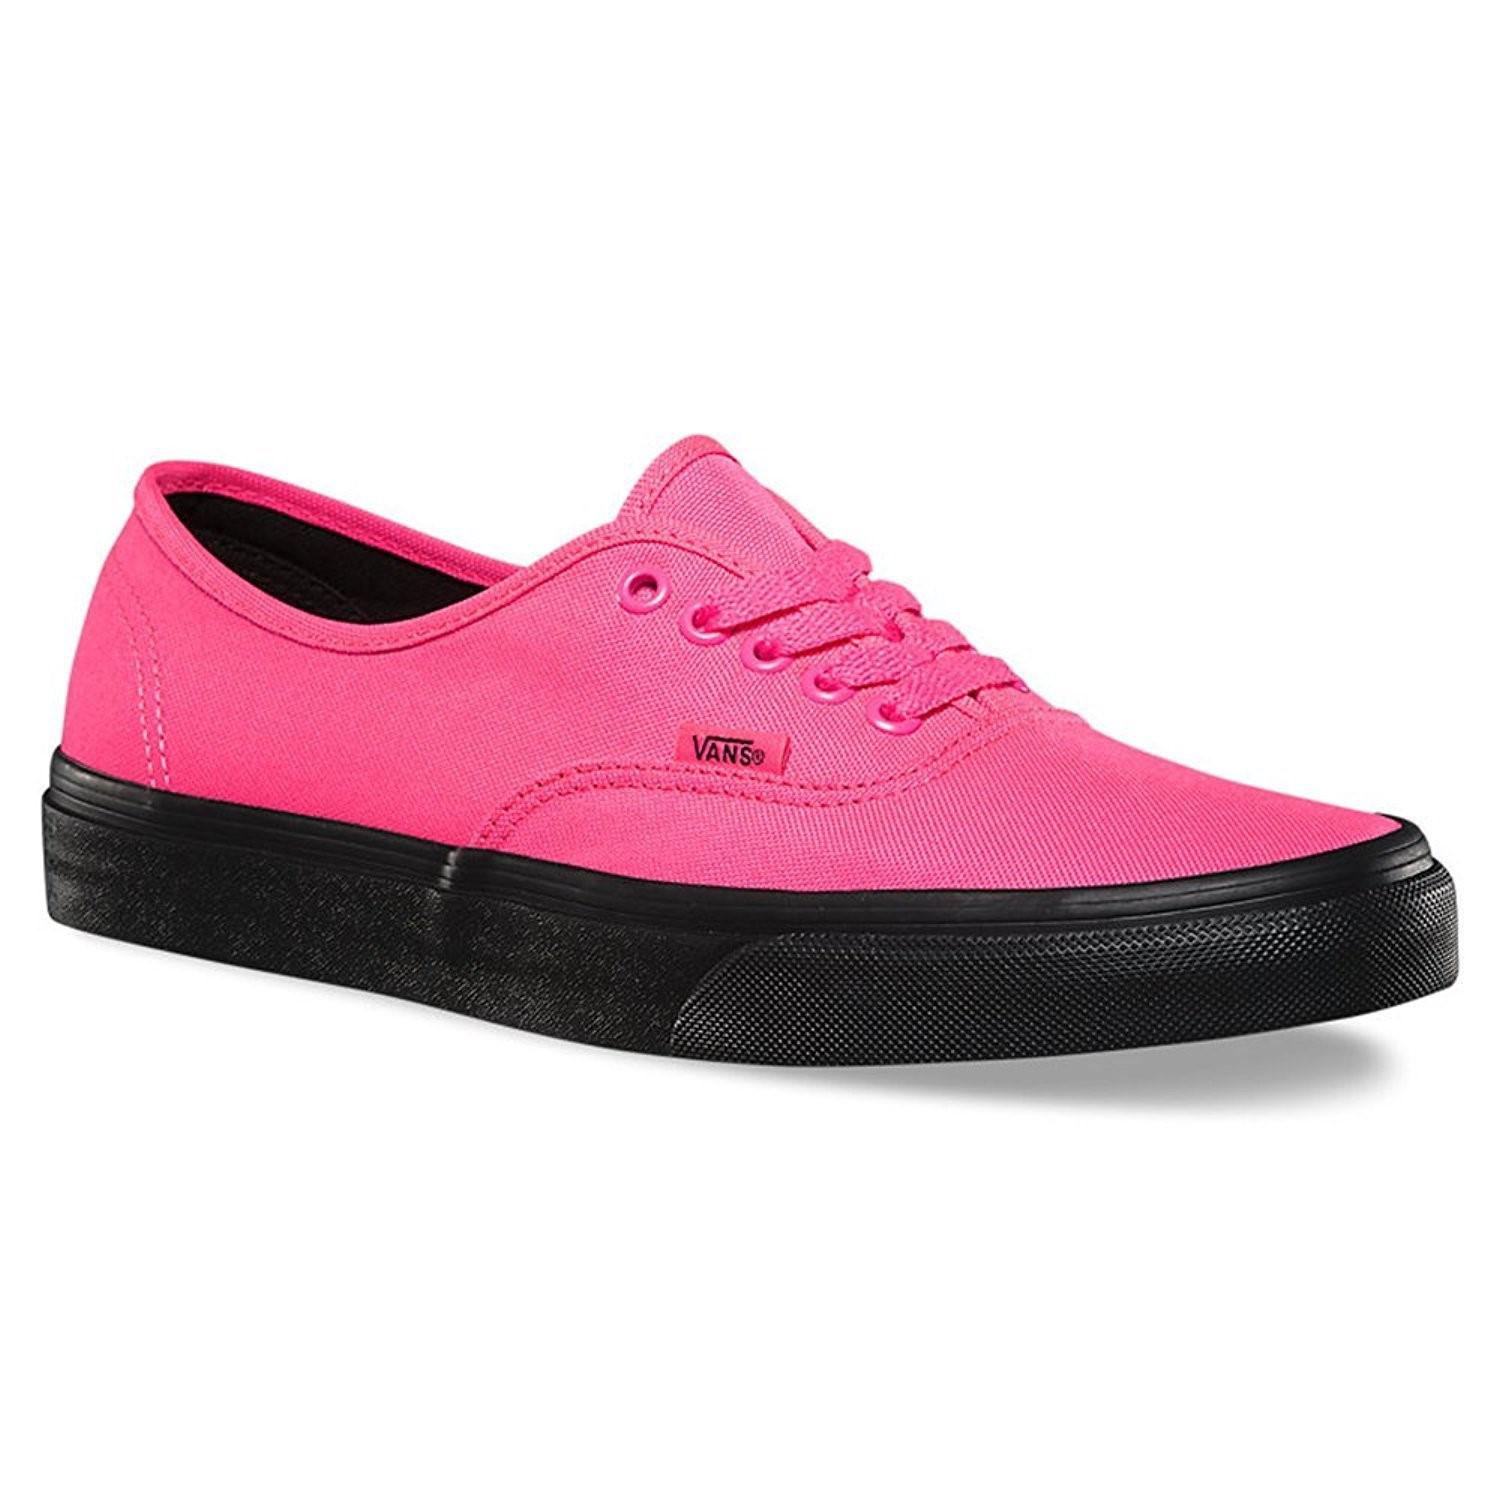 e6d51259a2 Lyst - Vans Mens Authentic Low Top Lace Up Fashion Sneaker in Pink ...